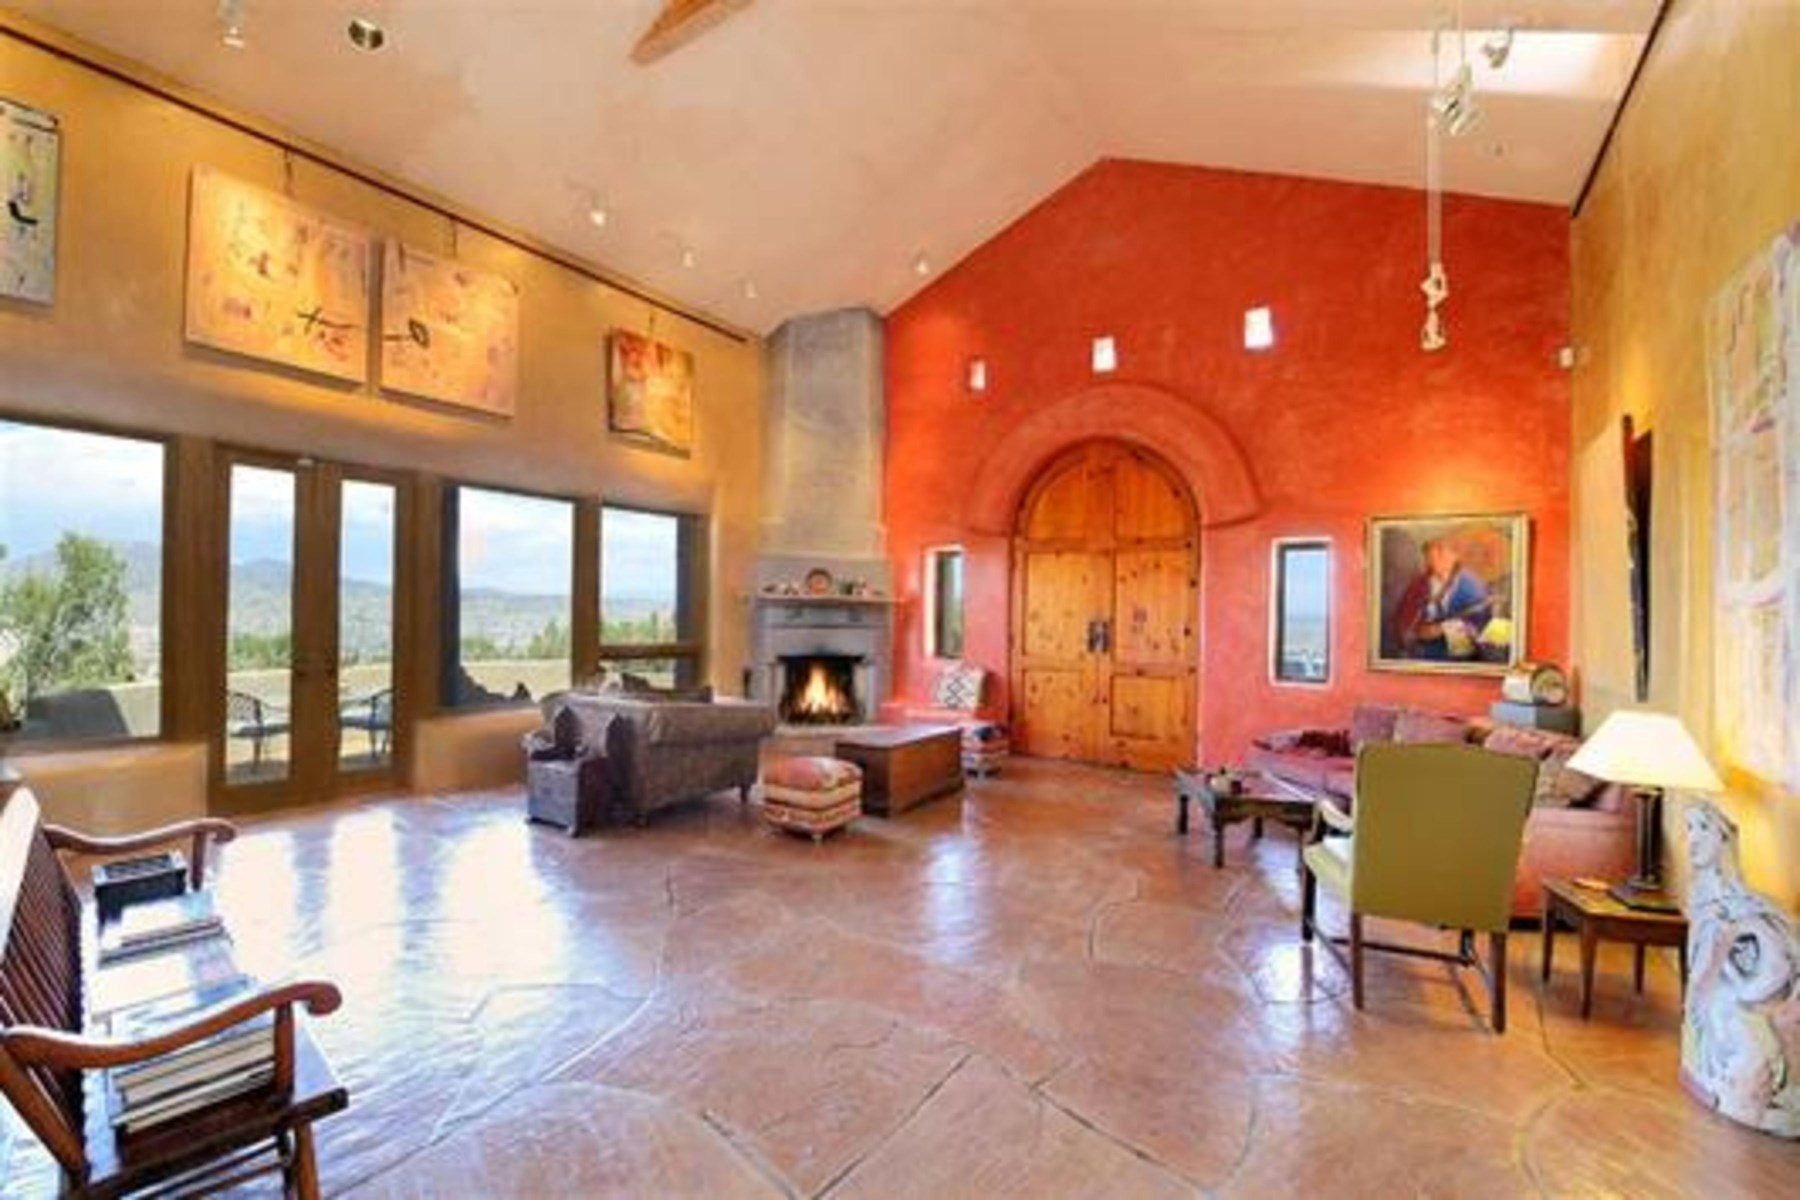 واحد منزل الأسرة للـ Sale في 20 Vista Del Mar Cerrillos, New Mexico, 87010 United States